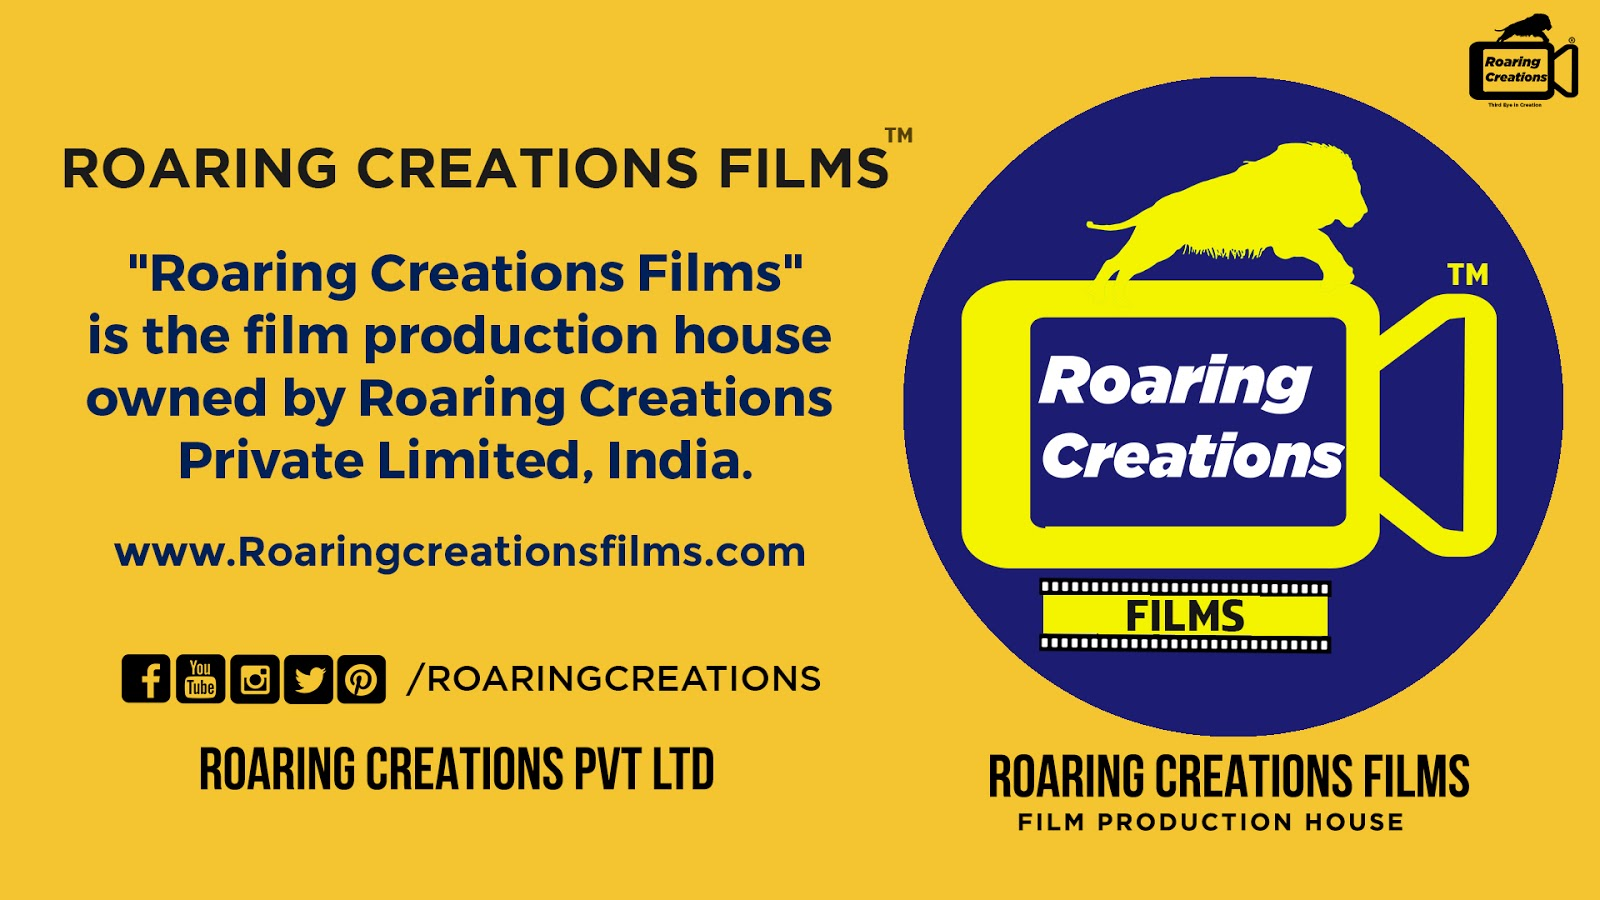 About Roaring Creations Films